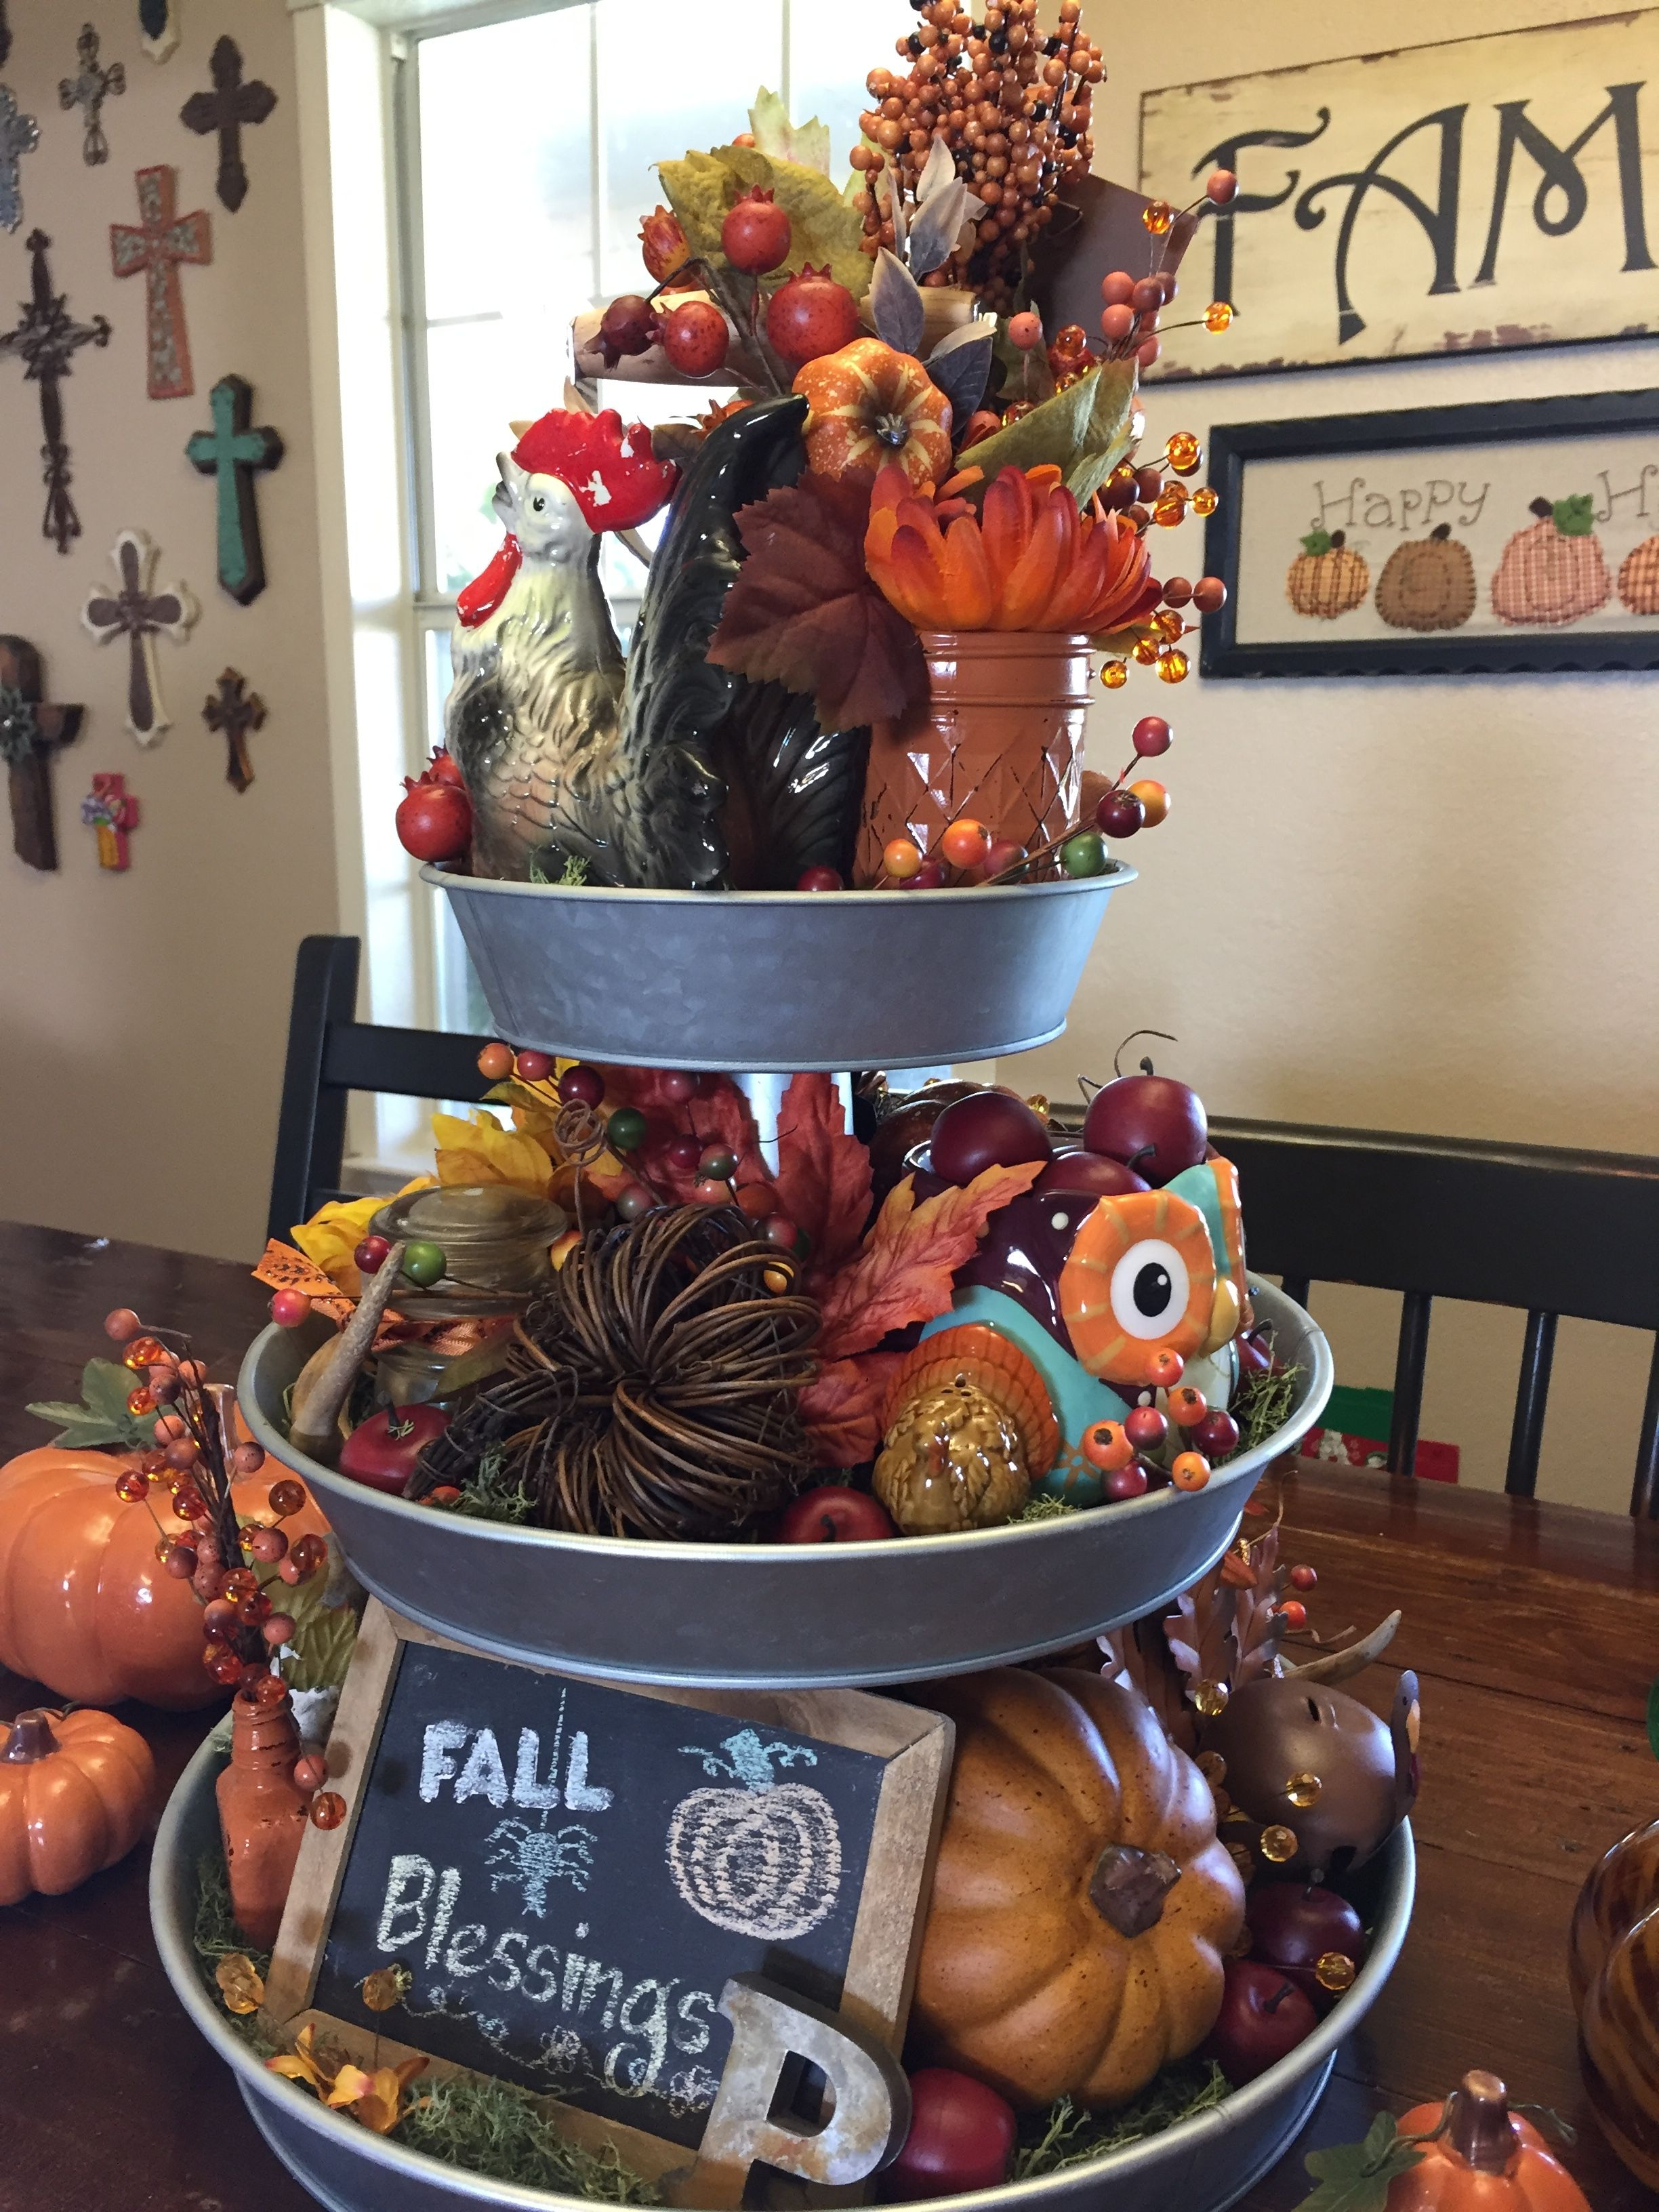 Fall 3 Tier Tray Tiered Tray Decor Tiered Tray Fall Decor